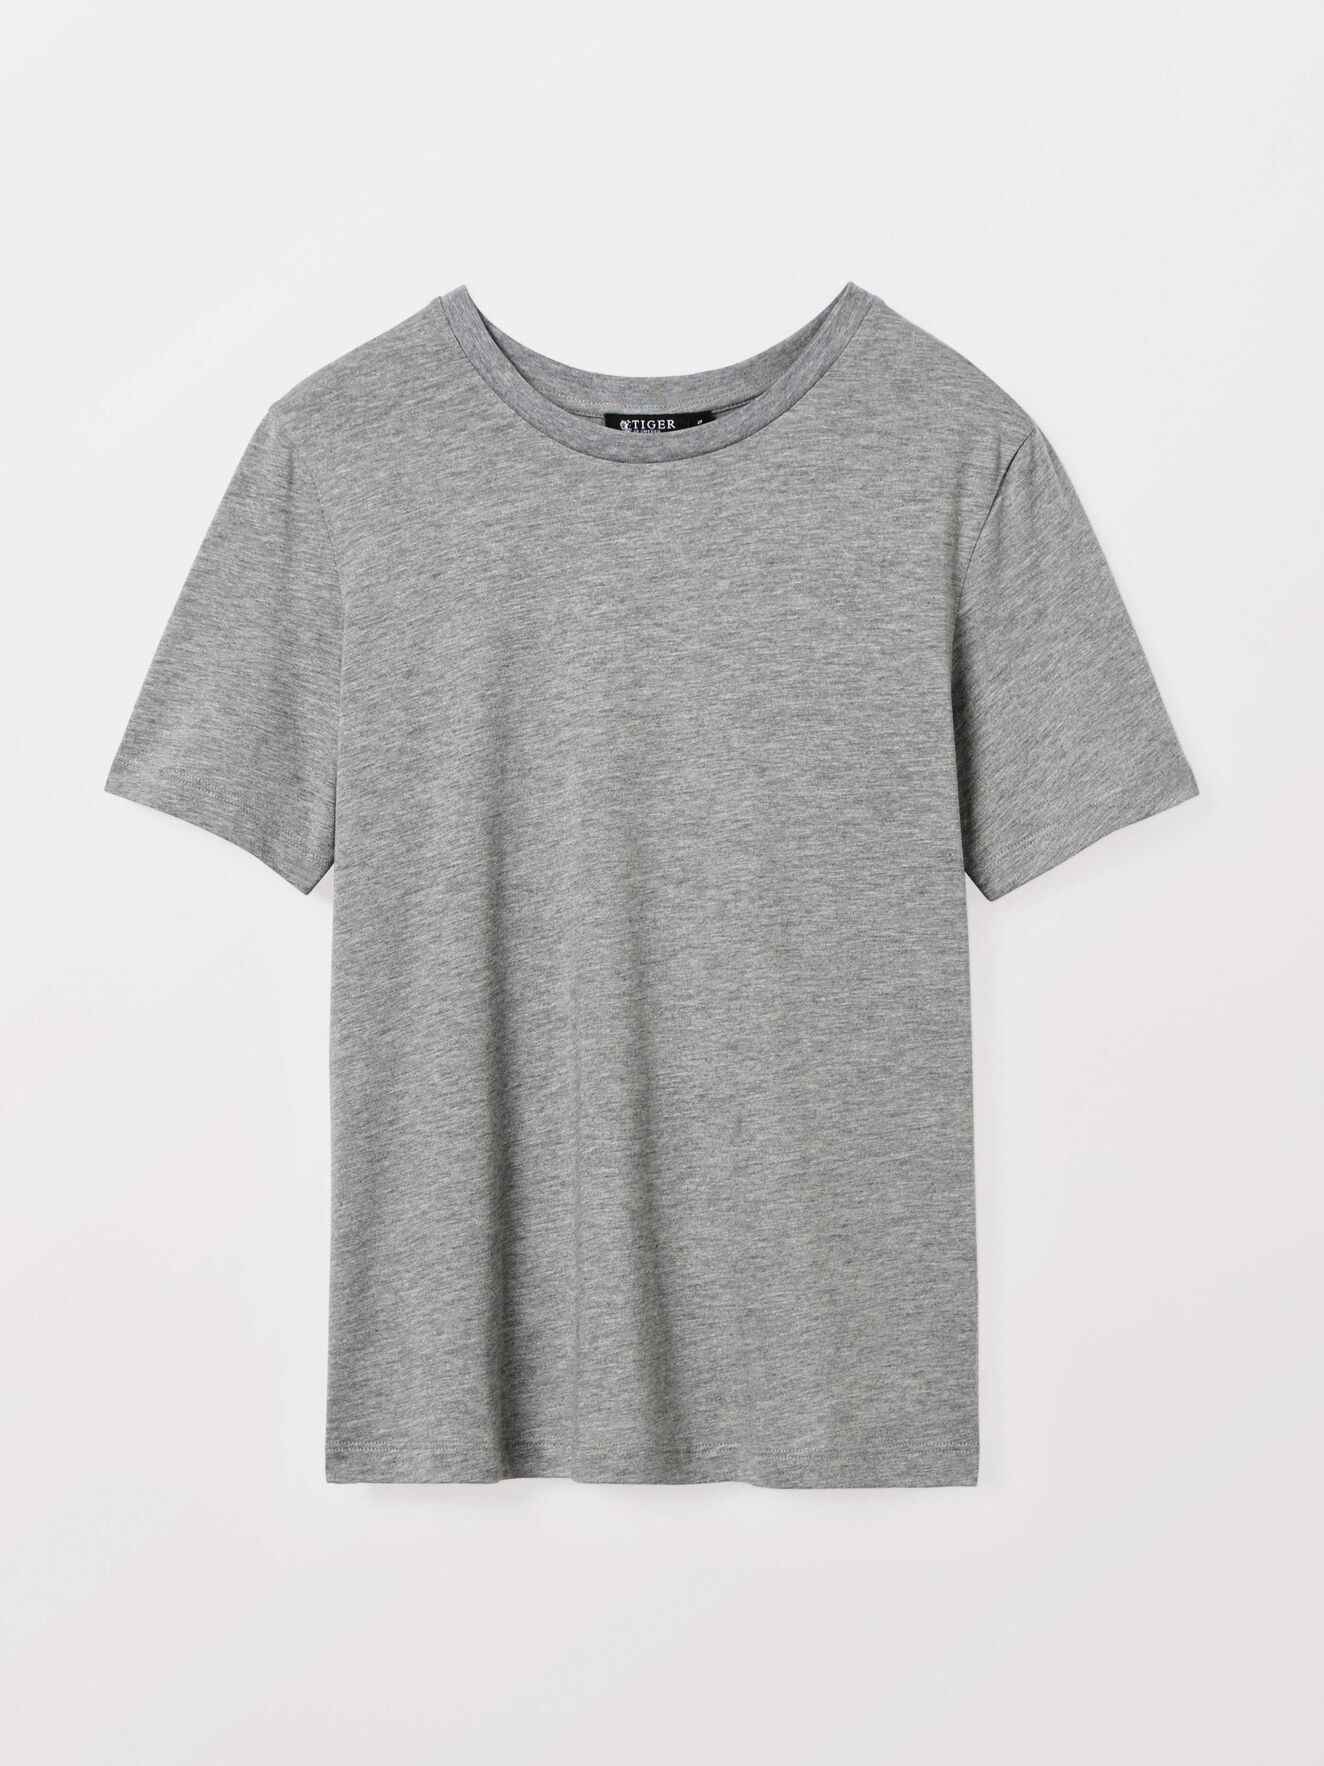 Deira t-shirt  in Med Grey Mel from Tiger of Sweden